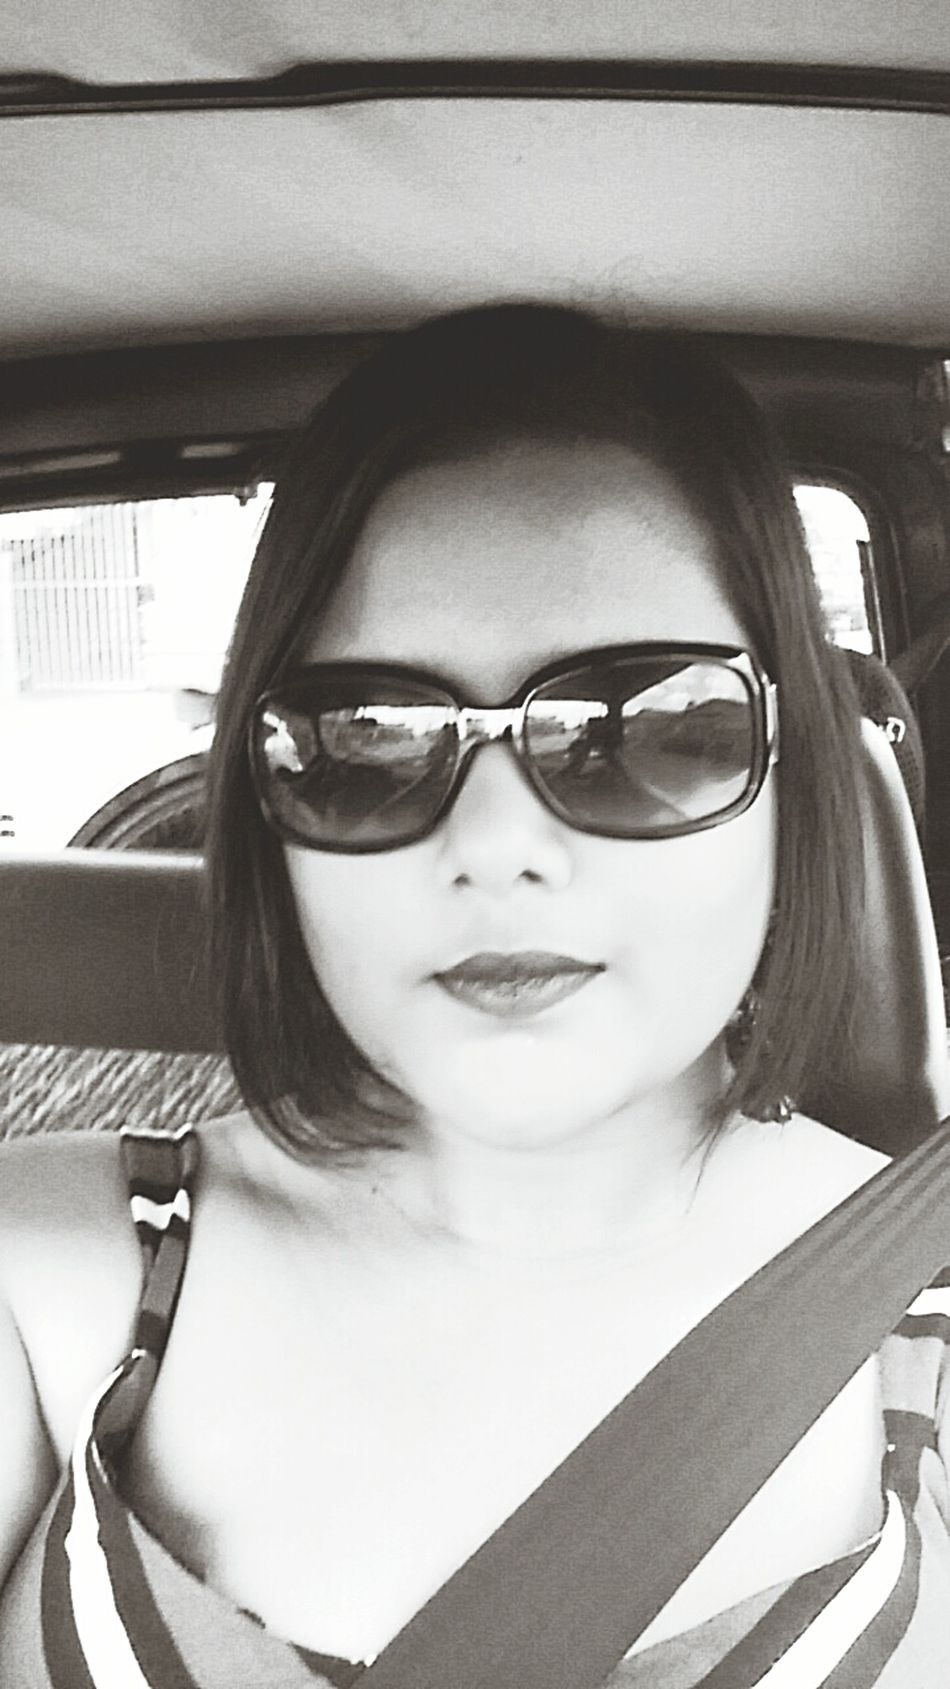 Black And White Love Glamour Shots Glamour That's Me Trinbago Beauty Happiness Fashionably Glamorous Always Wear Your Seatbelt Seatbeltssowecanbesafe